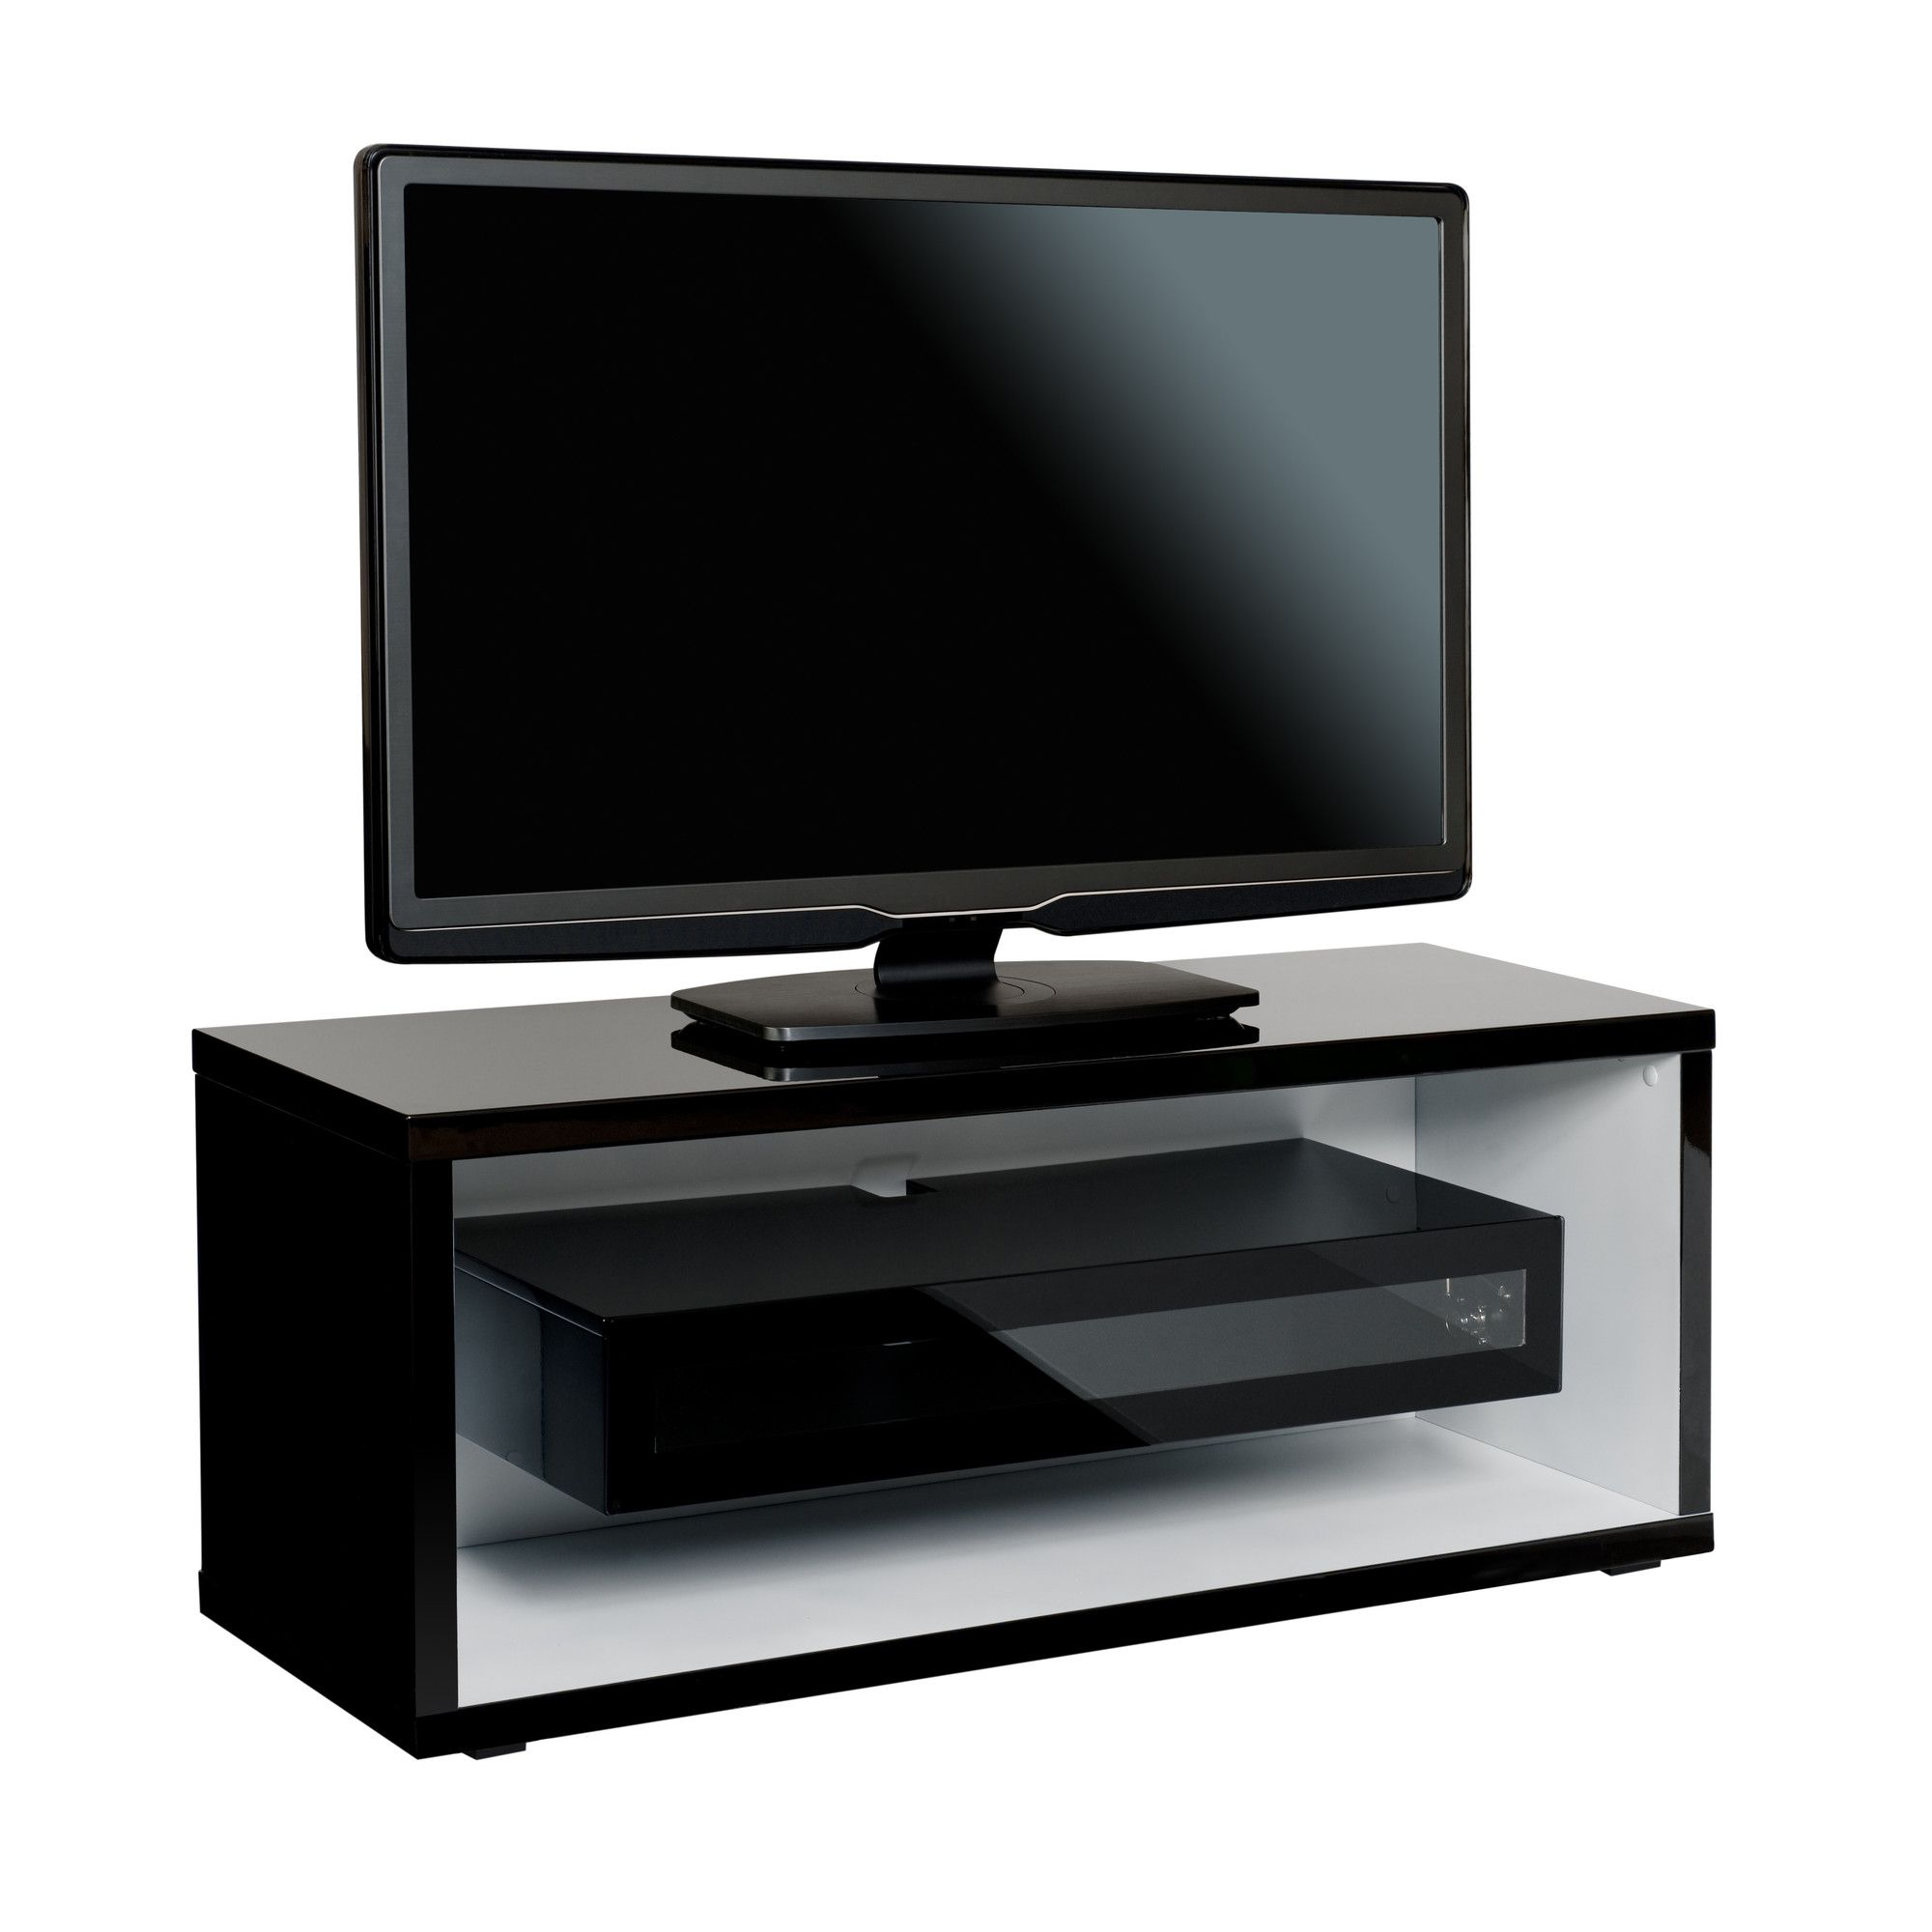 Ateca Vision Majestic TV Stand at Tesco Direct